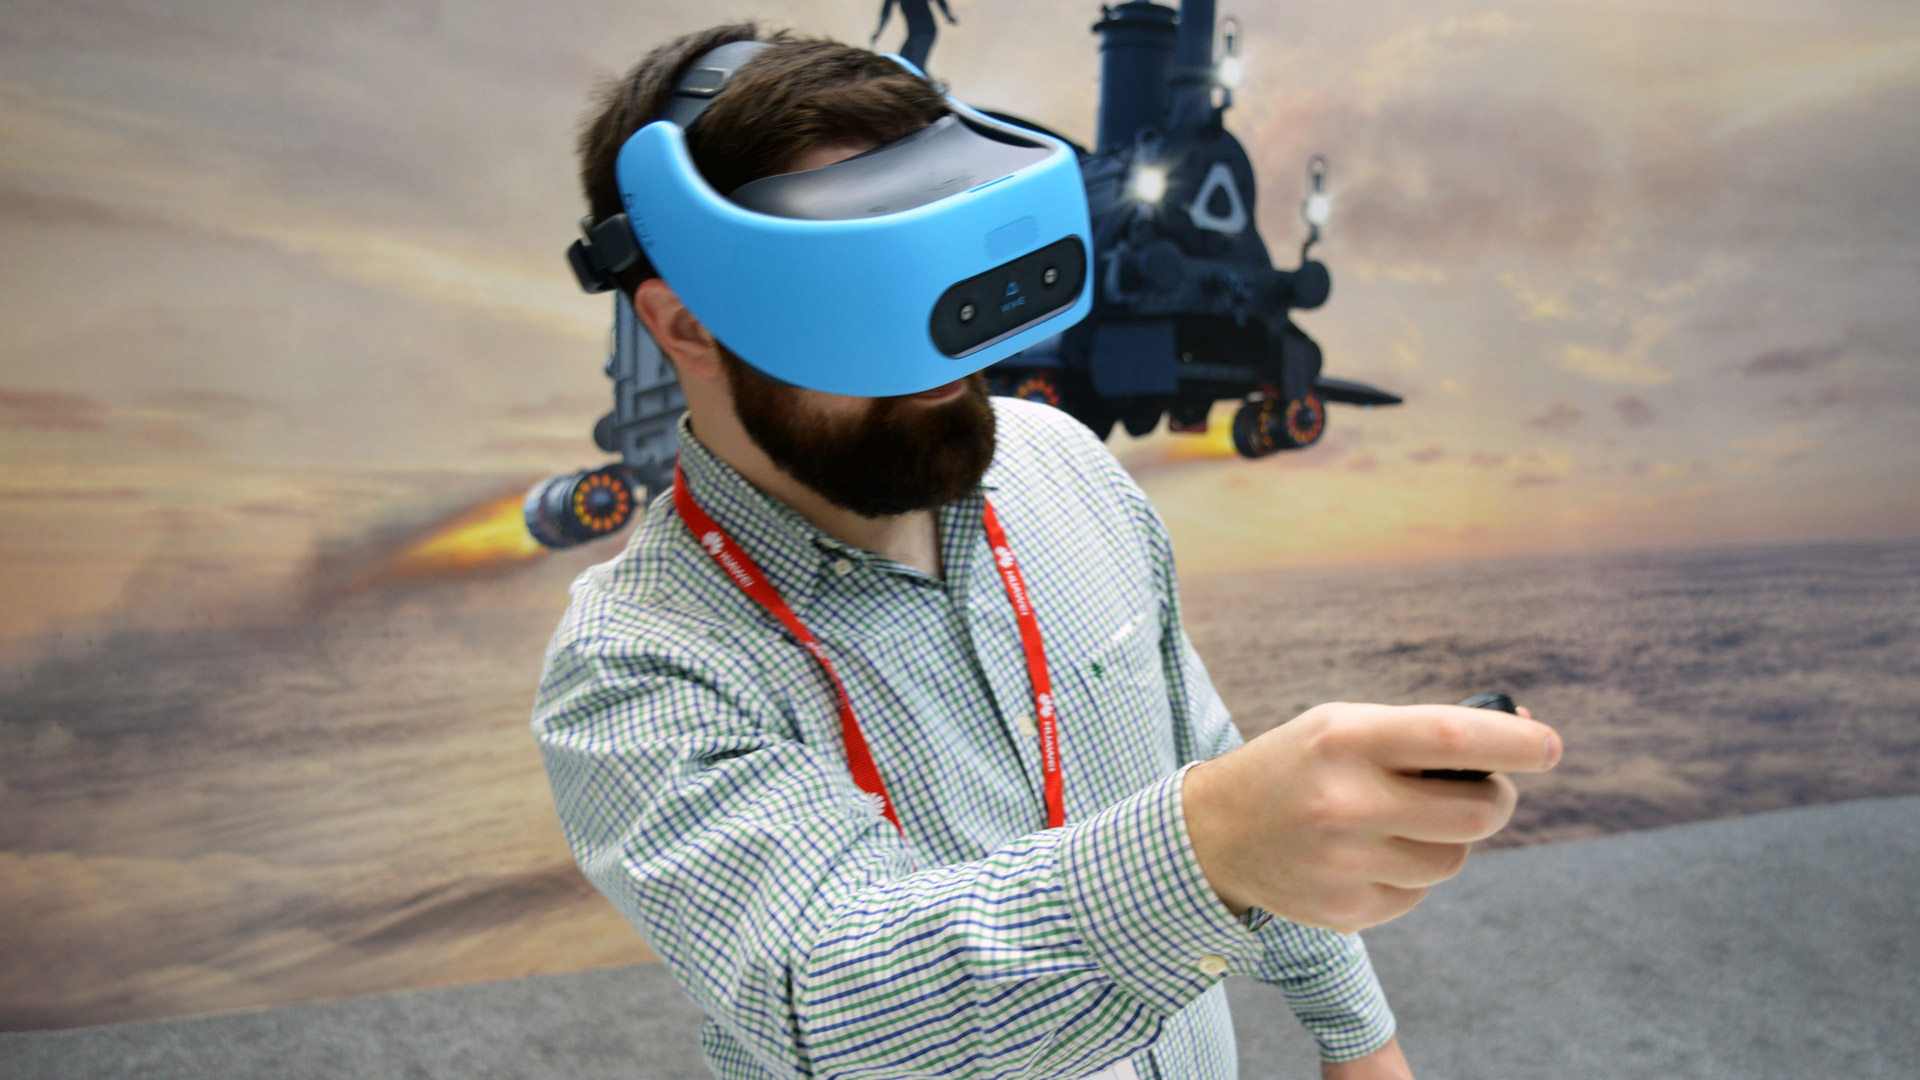 Vive Focus to Get 6DOF Controller Mode, Optical Hand-tracking for